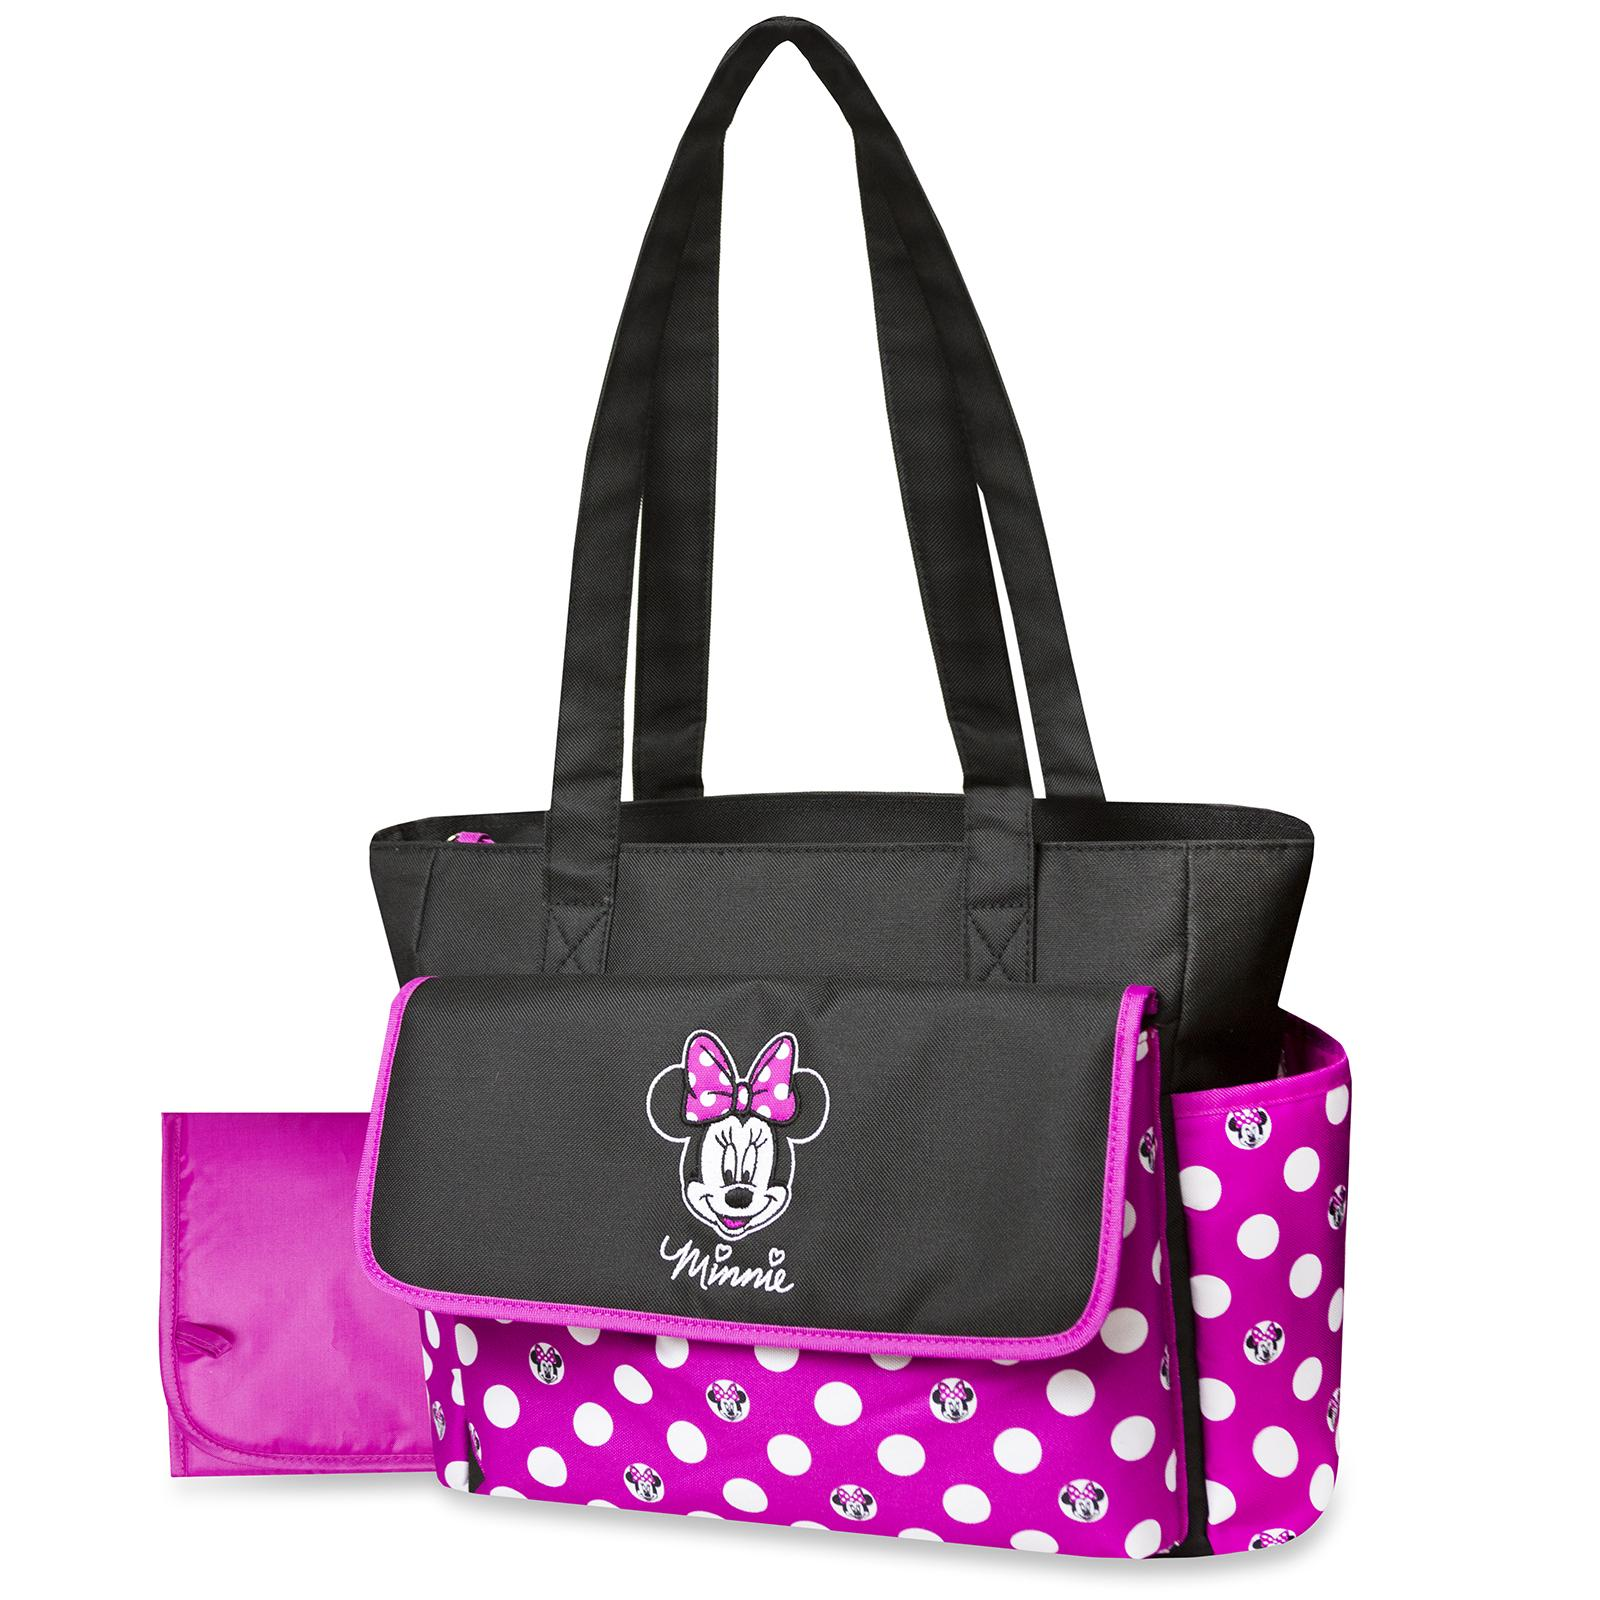 Disney Minnie Mouse Diaper Bag & Changing Pad - Polka Dots,  Pink